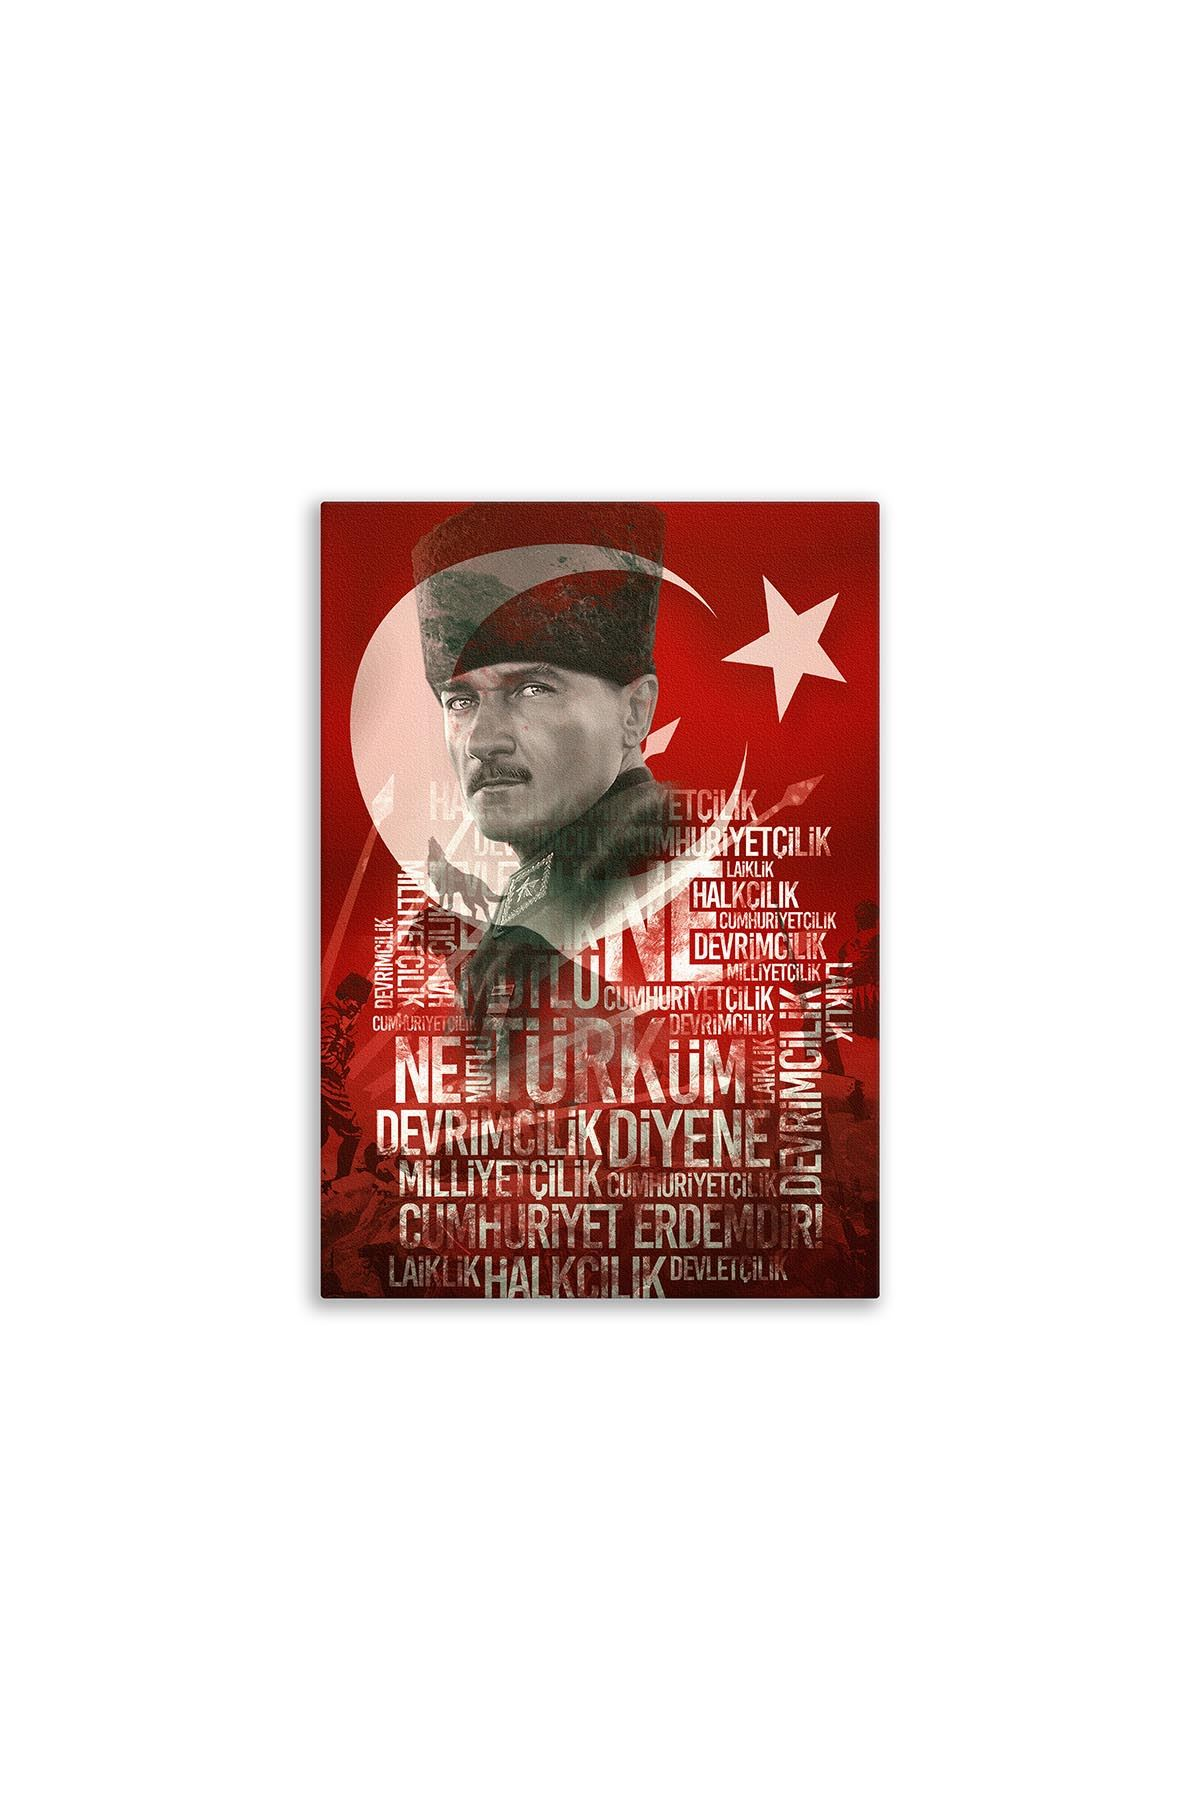 Atatürk Canvas Board | Decorative Painting | Printed Board | Personalized Pictures | Canvas Board